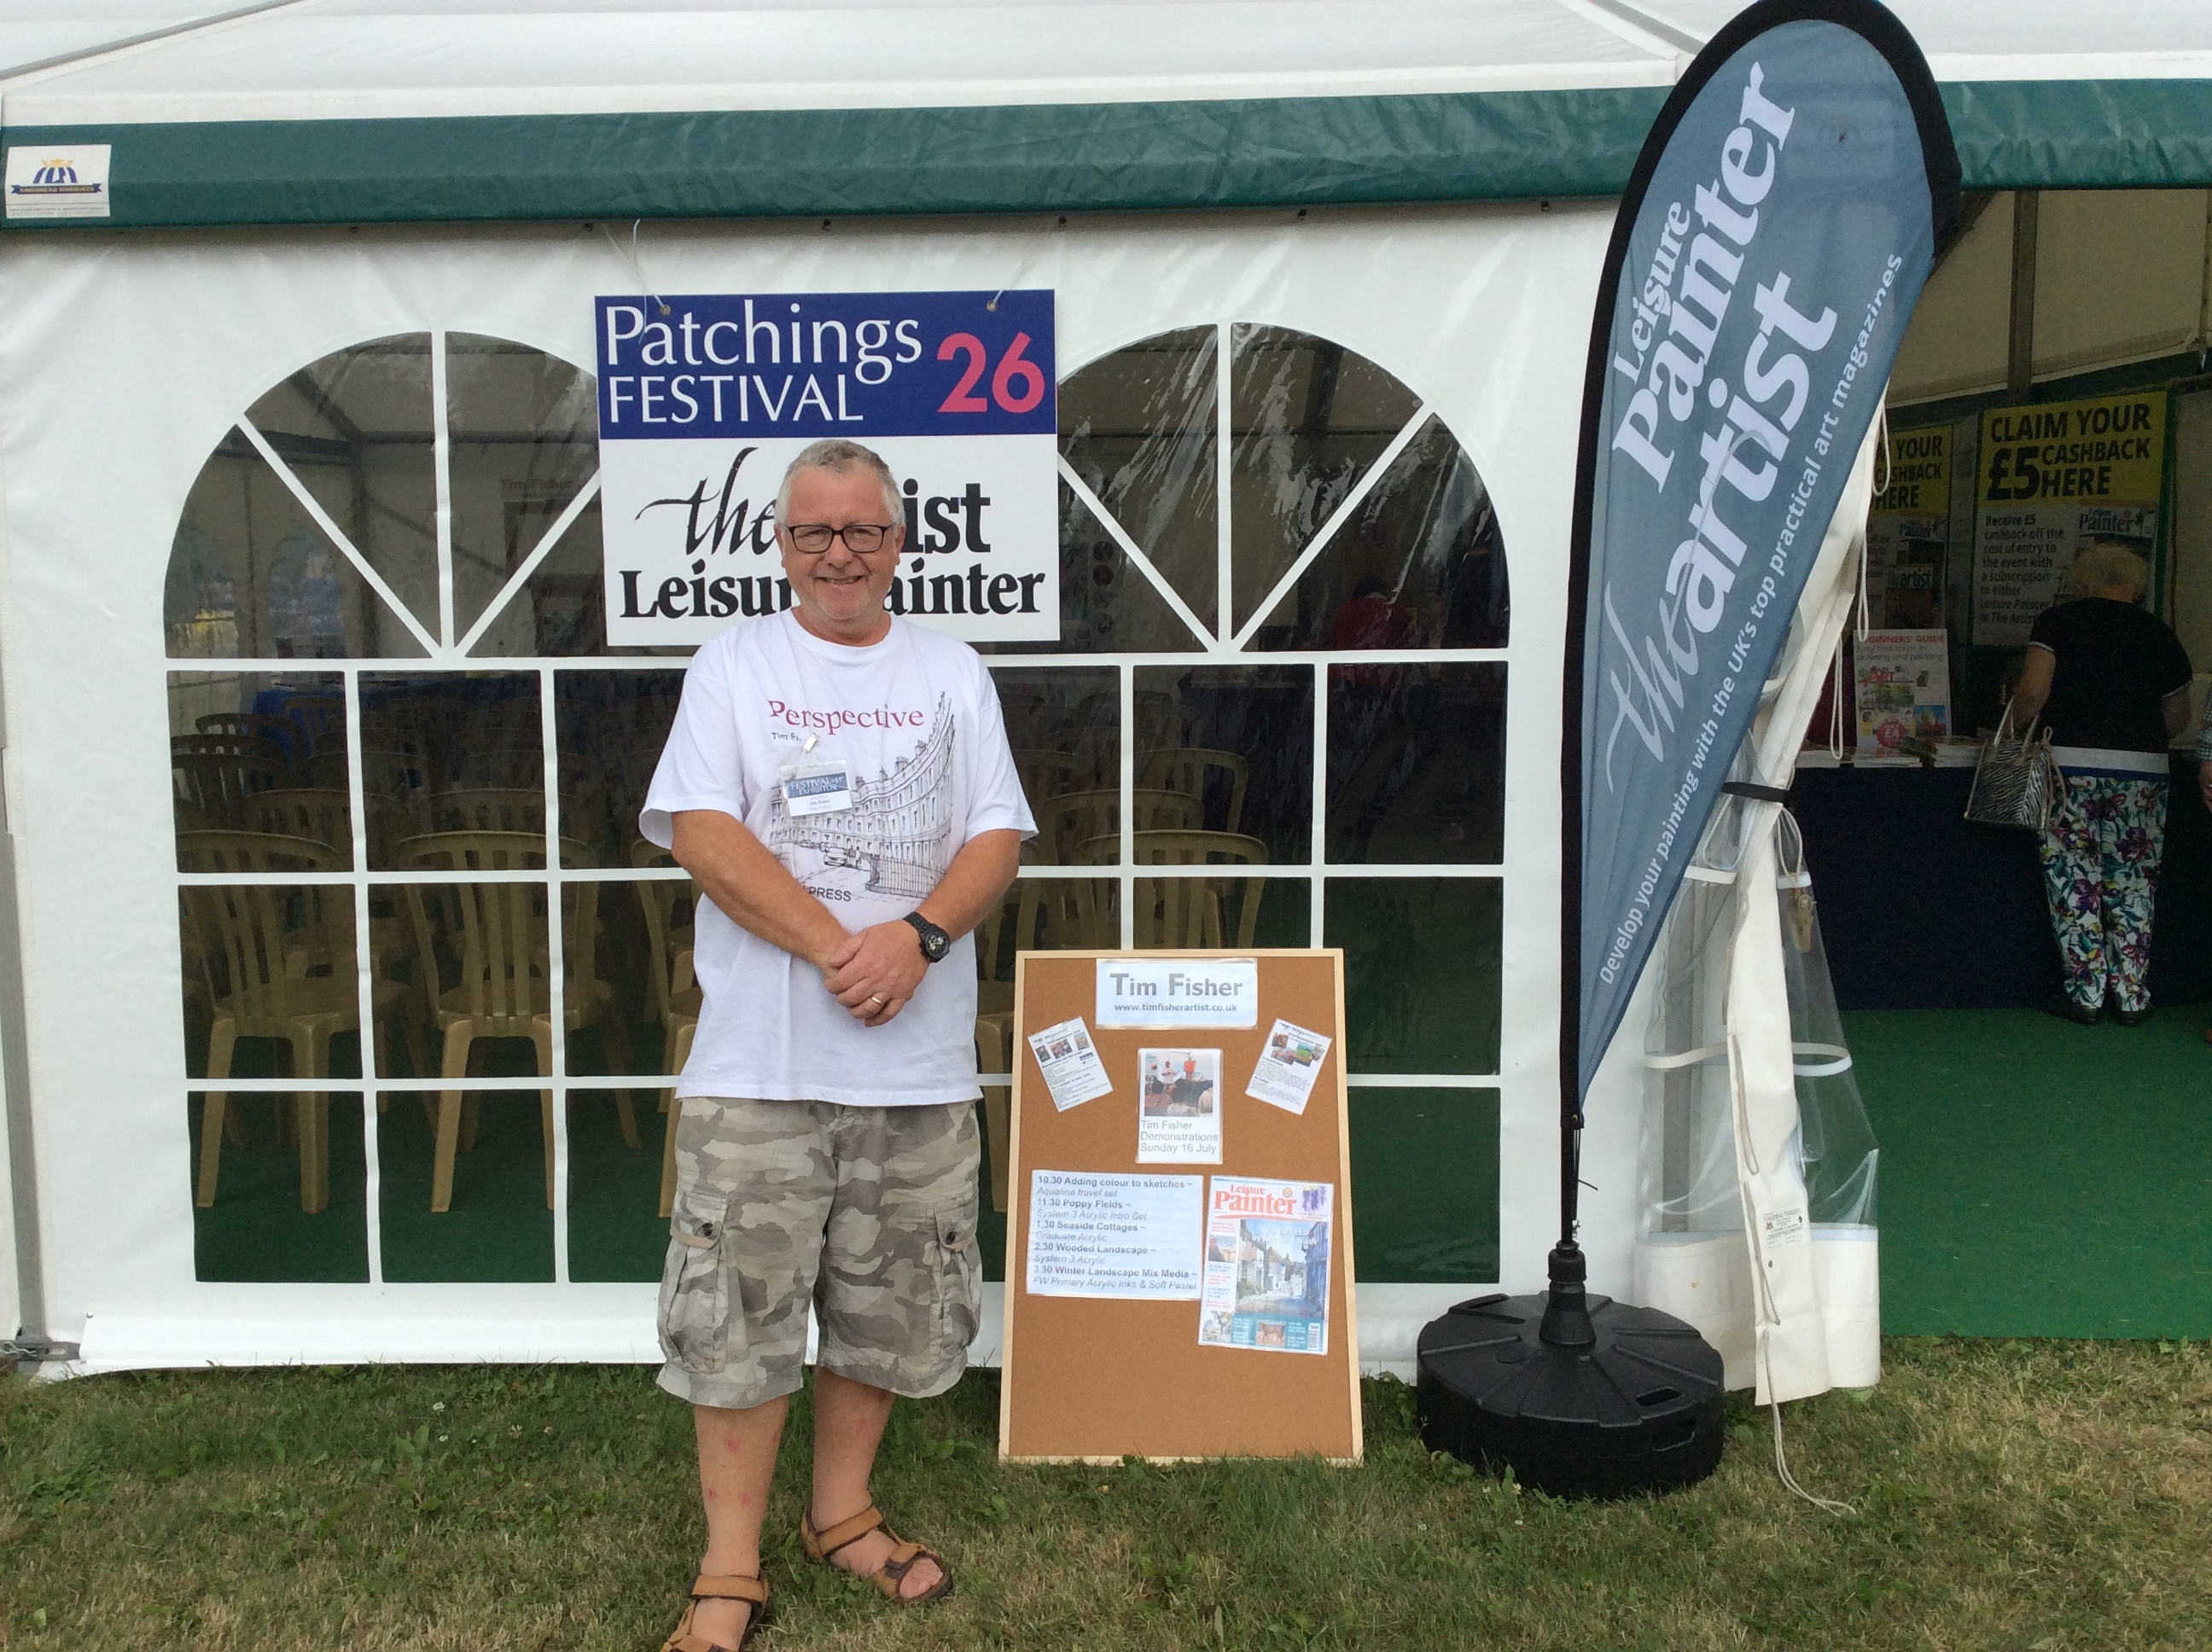 Patchings Art, Craft & Photography Festival 2022